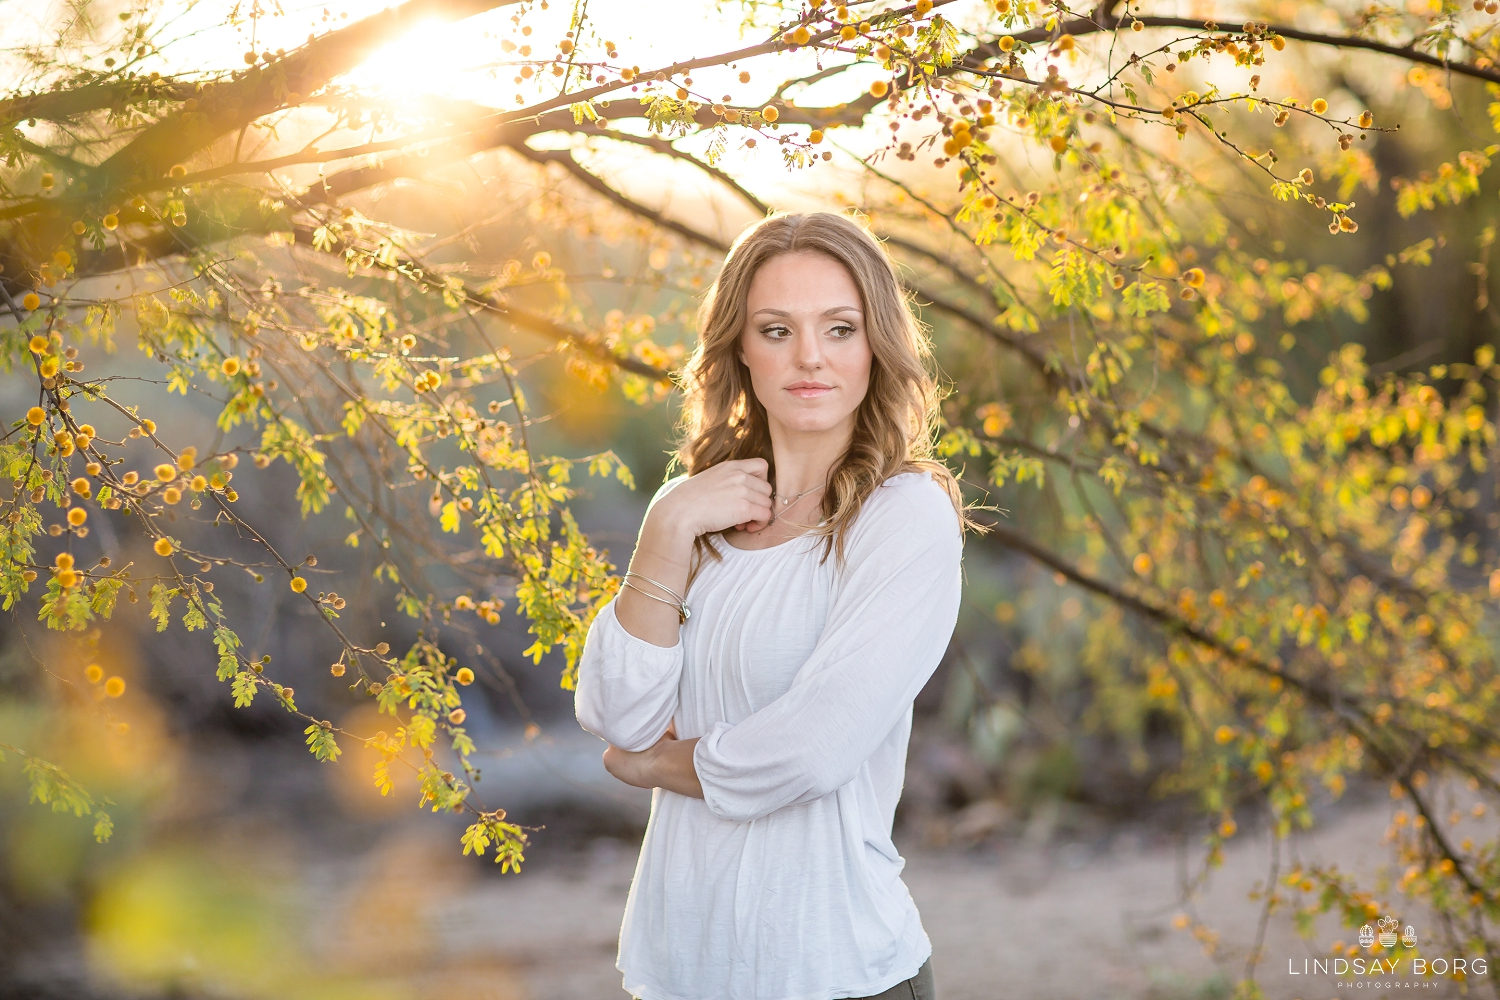 Lindsay-Borg-Photography-arizona-senior-wedding-portrait-photographer-az_1012.jpg